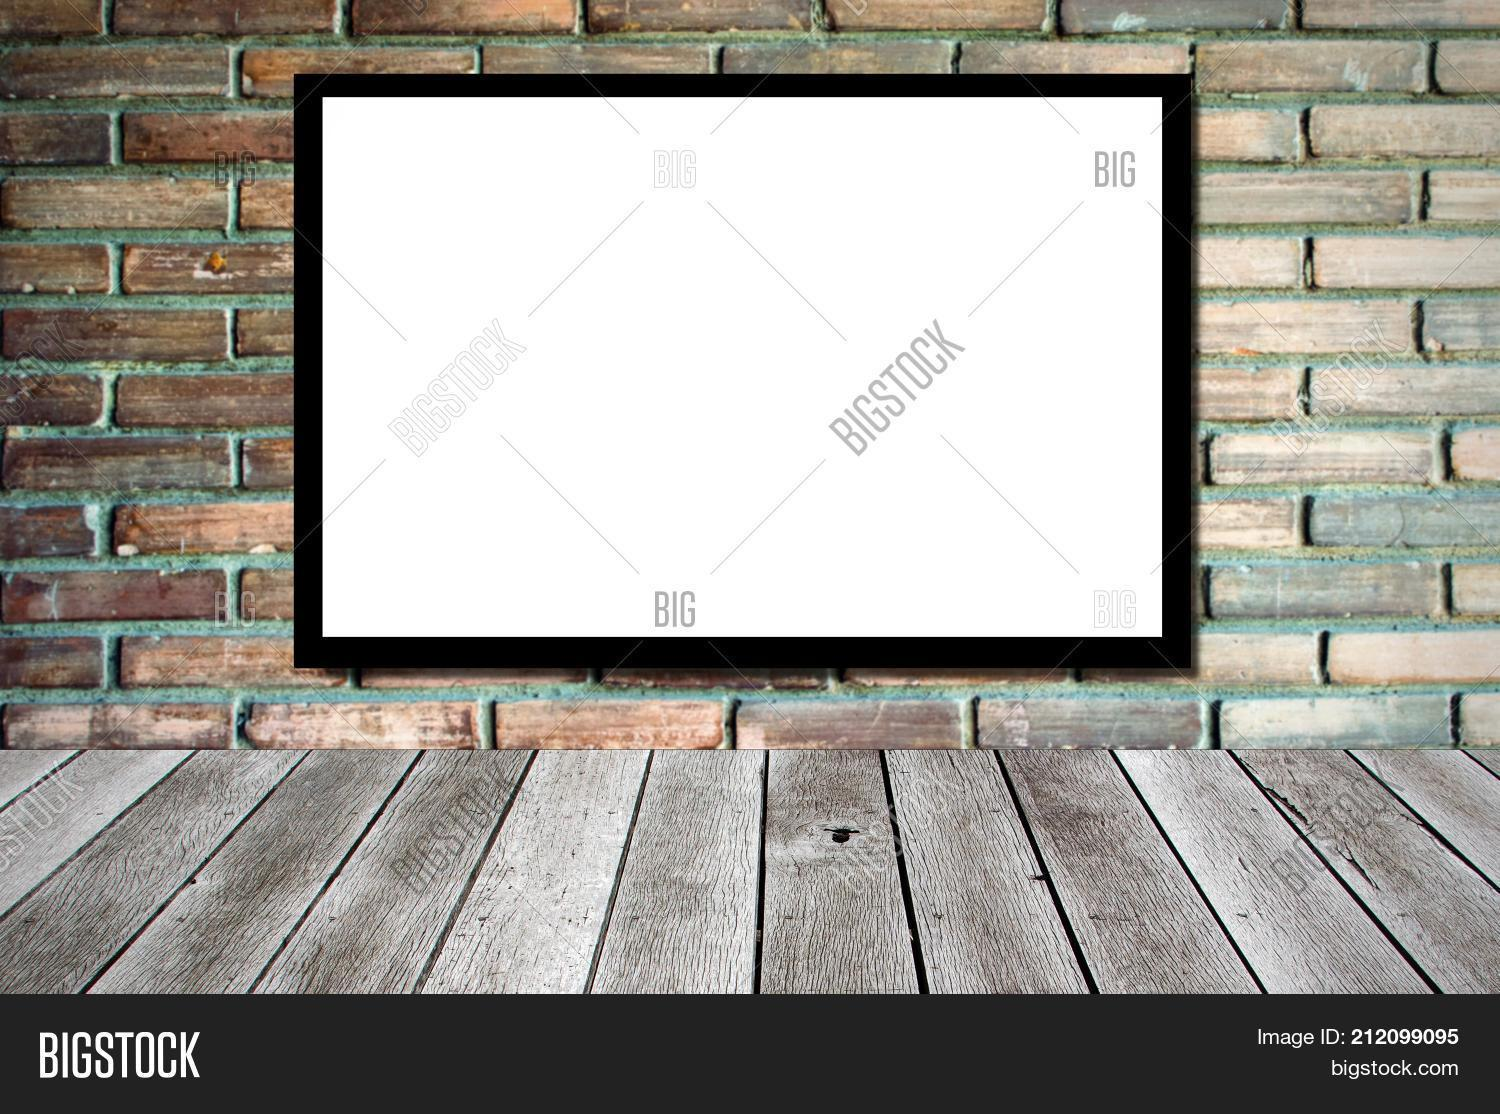 Blank Advertising Billboard Or Wide Screen Television On Old Vintage Brick Wall Background And Wooden Shelf